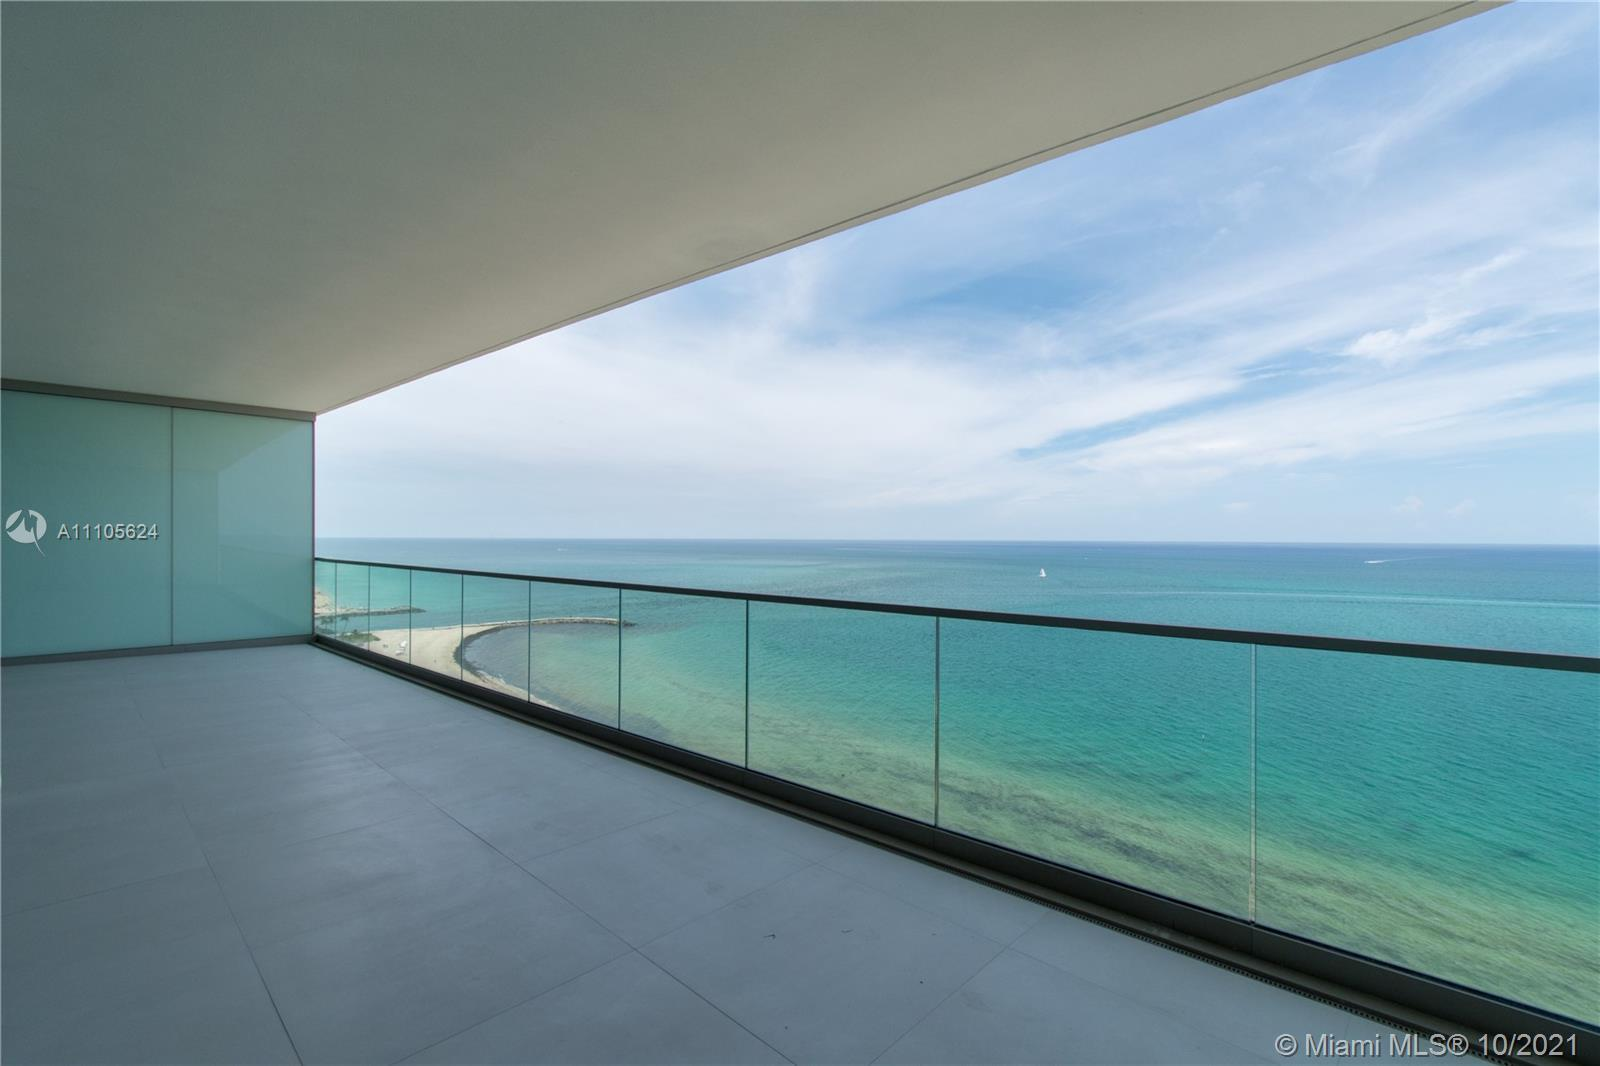 Welcome home! This spectacular east-west flow through Beachfront Residence features direct, unobstru